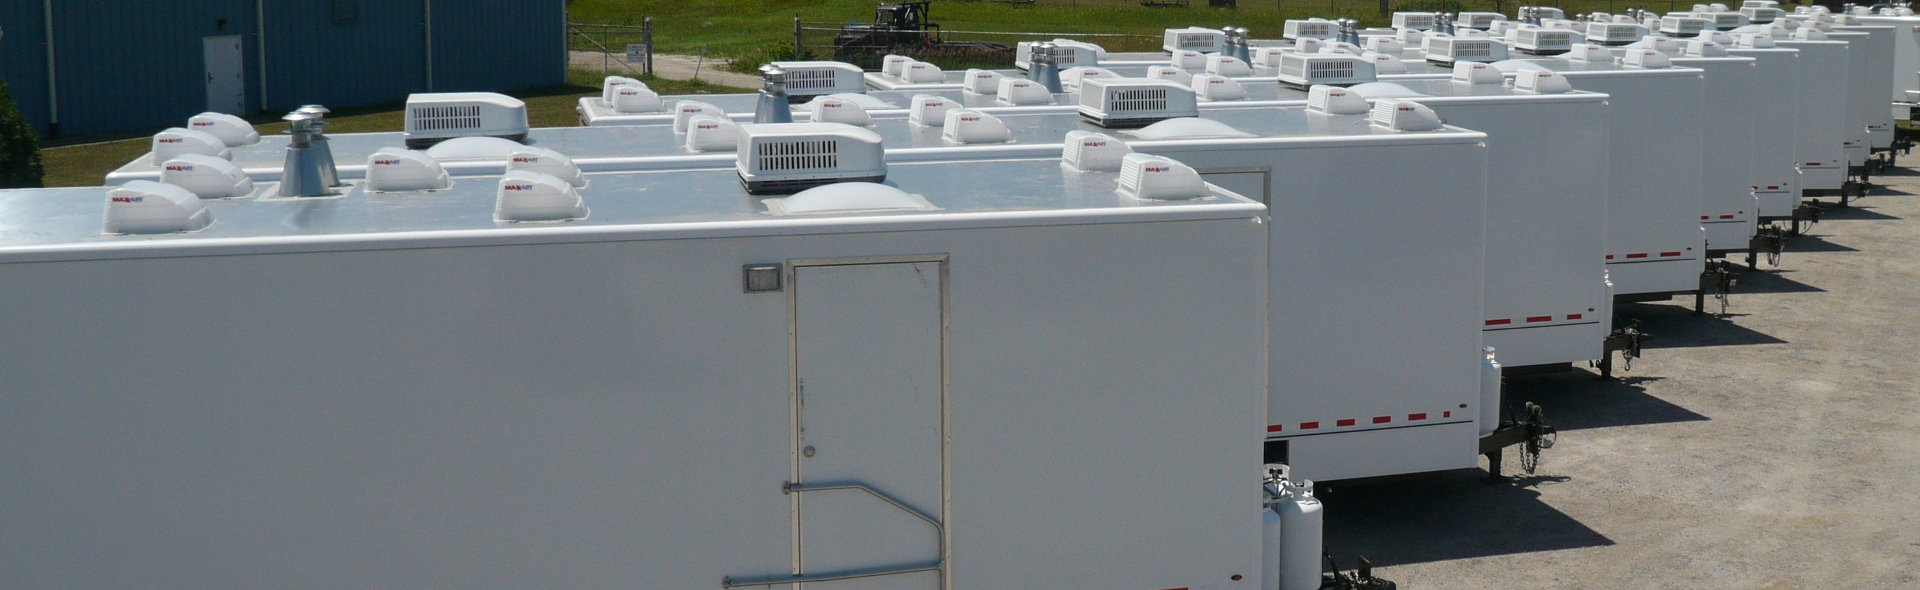 Variety! Our Restroom trailers can meet any need, anywhere.